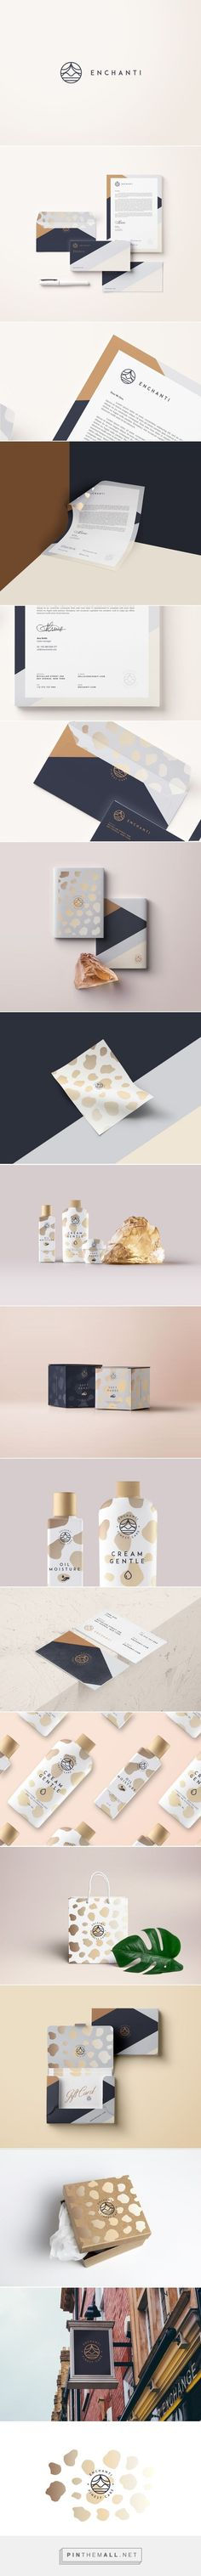 Enchanti Finest Care Cosmetic Branding by Sebastian Bednarek